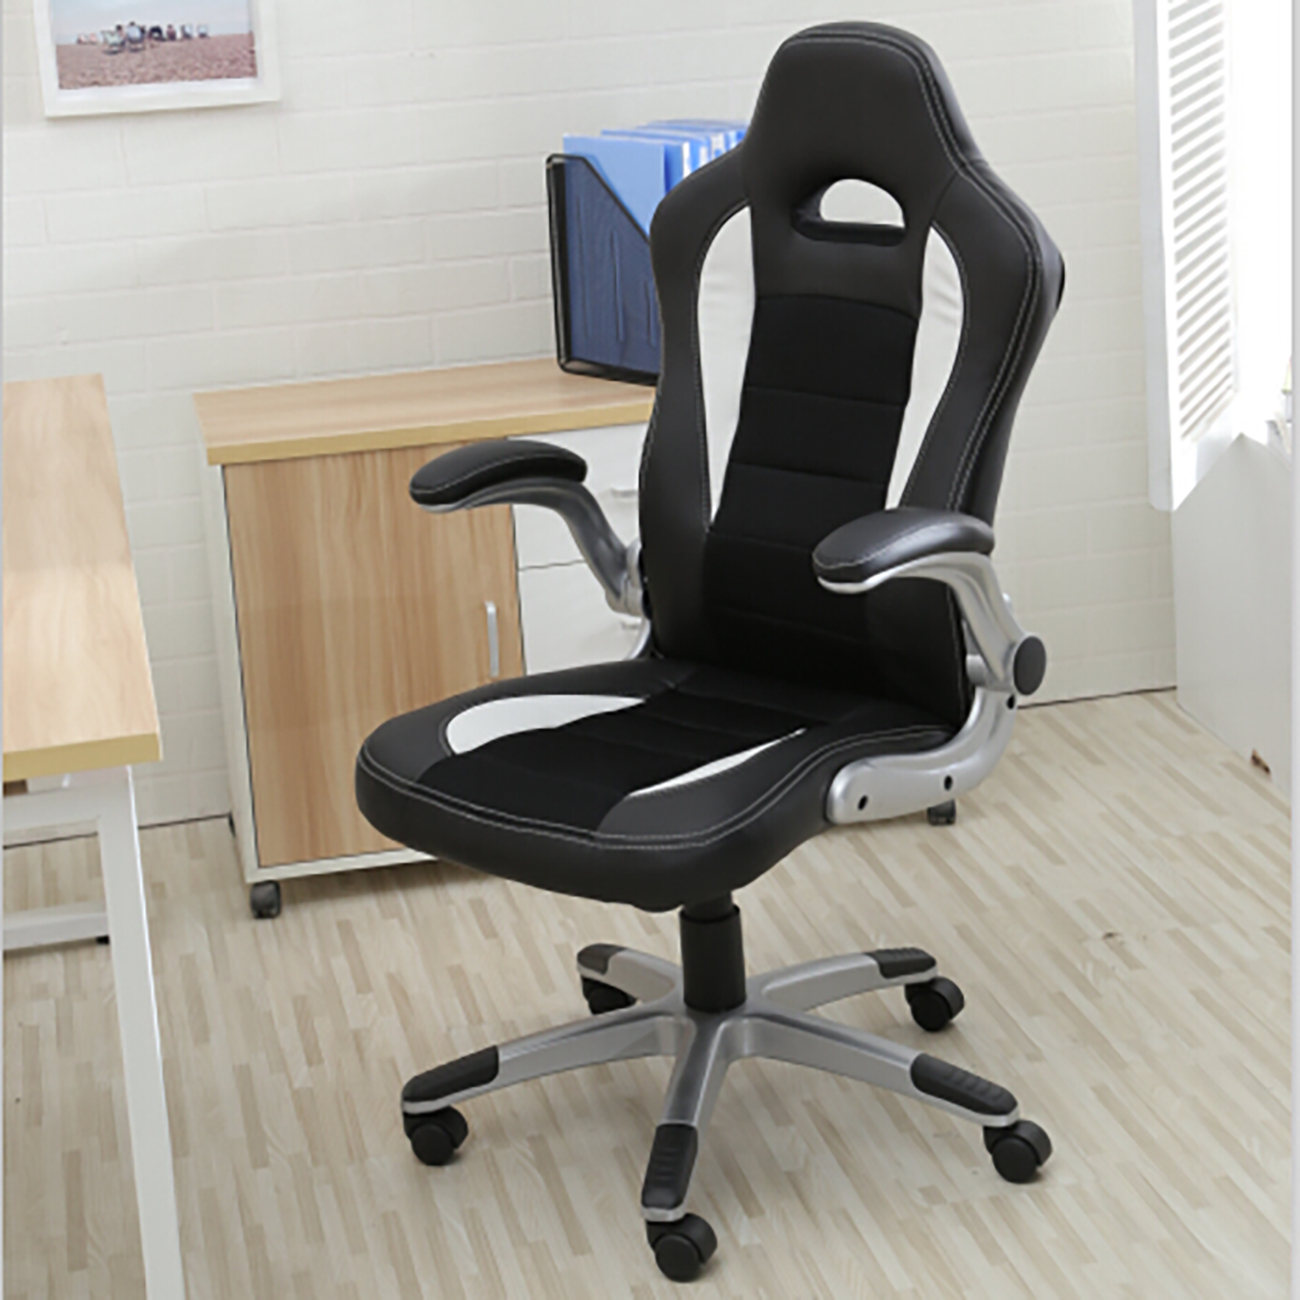 leather bucket chair swivel no casters office ergonomic computer pu desk race car